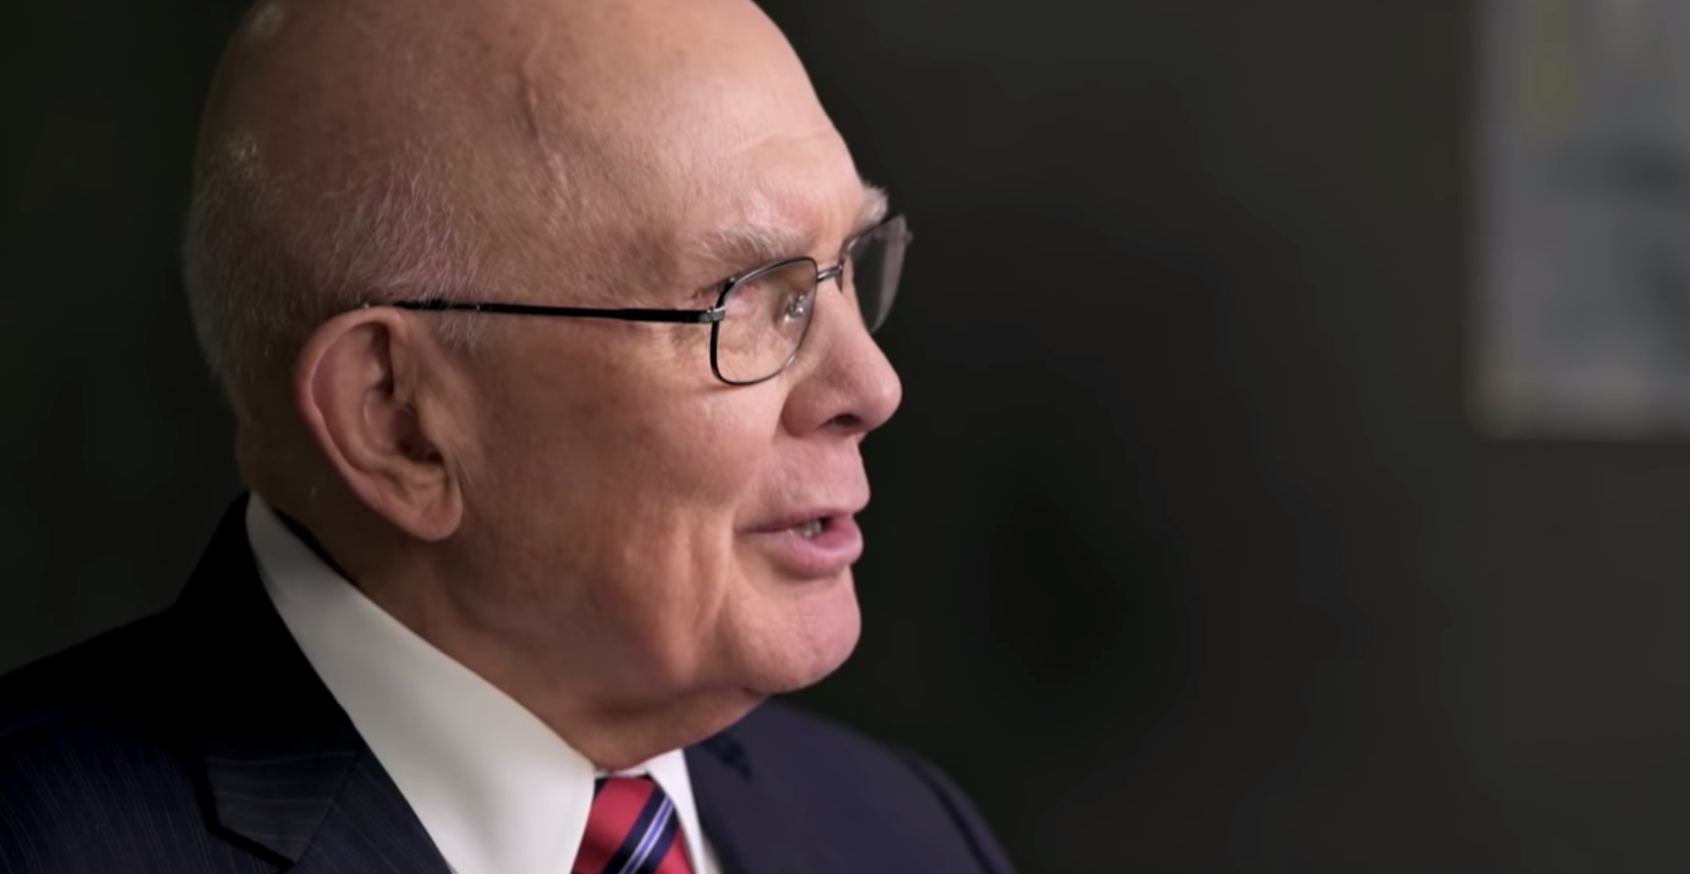 President Dallin H. Oaks, first counselor in the First Presidency, speaks about overcoming pornography in a video published on YouTube by The Church of Jesus Christ of Latter-Day Saints on June 24, 2019.